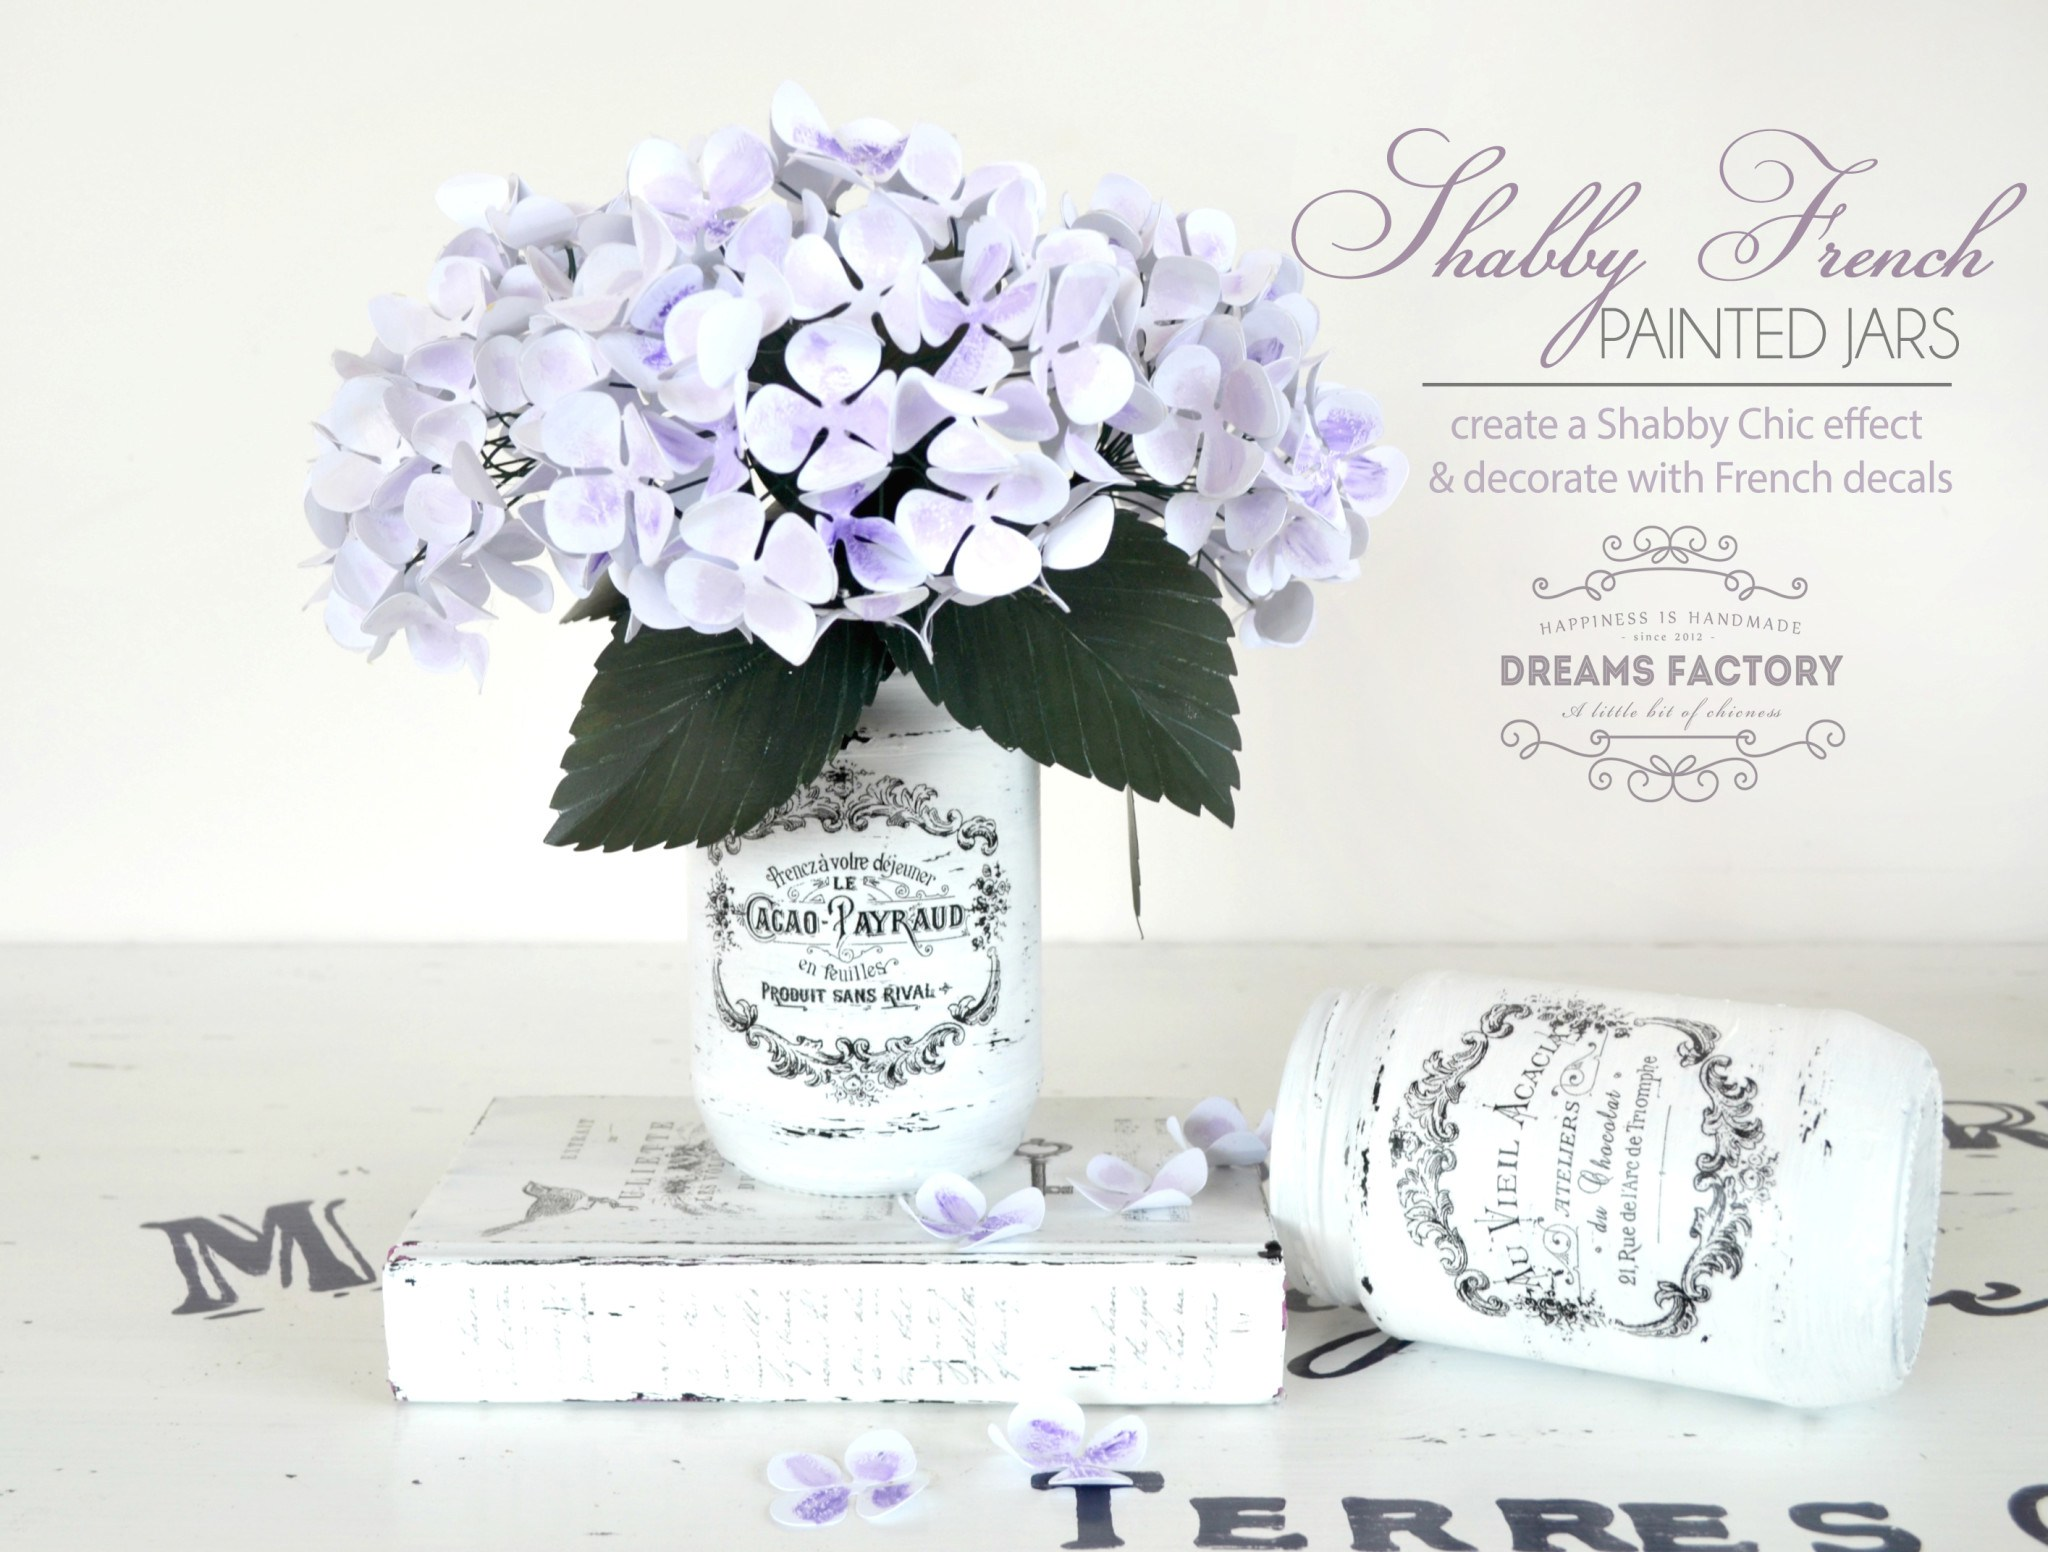 Shabby French-painted jars by Dreams Factory shared at Share It One More Time 19